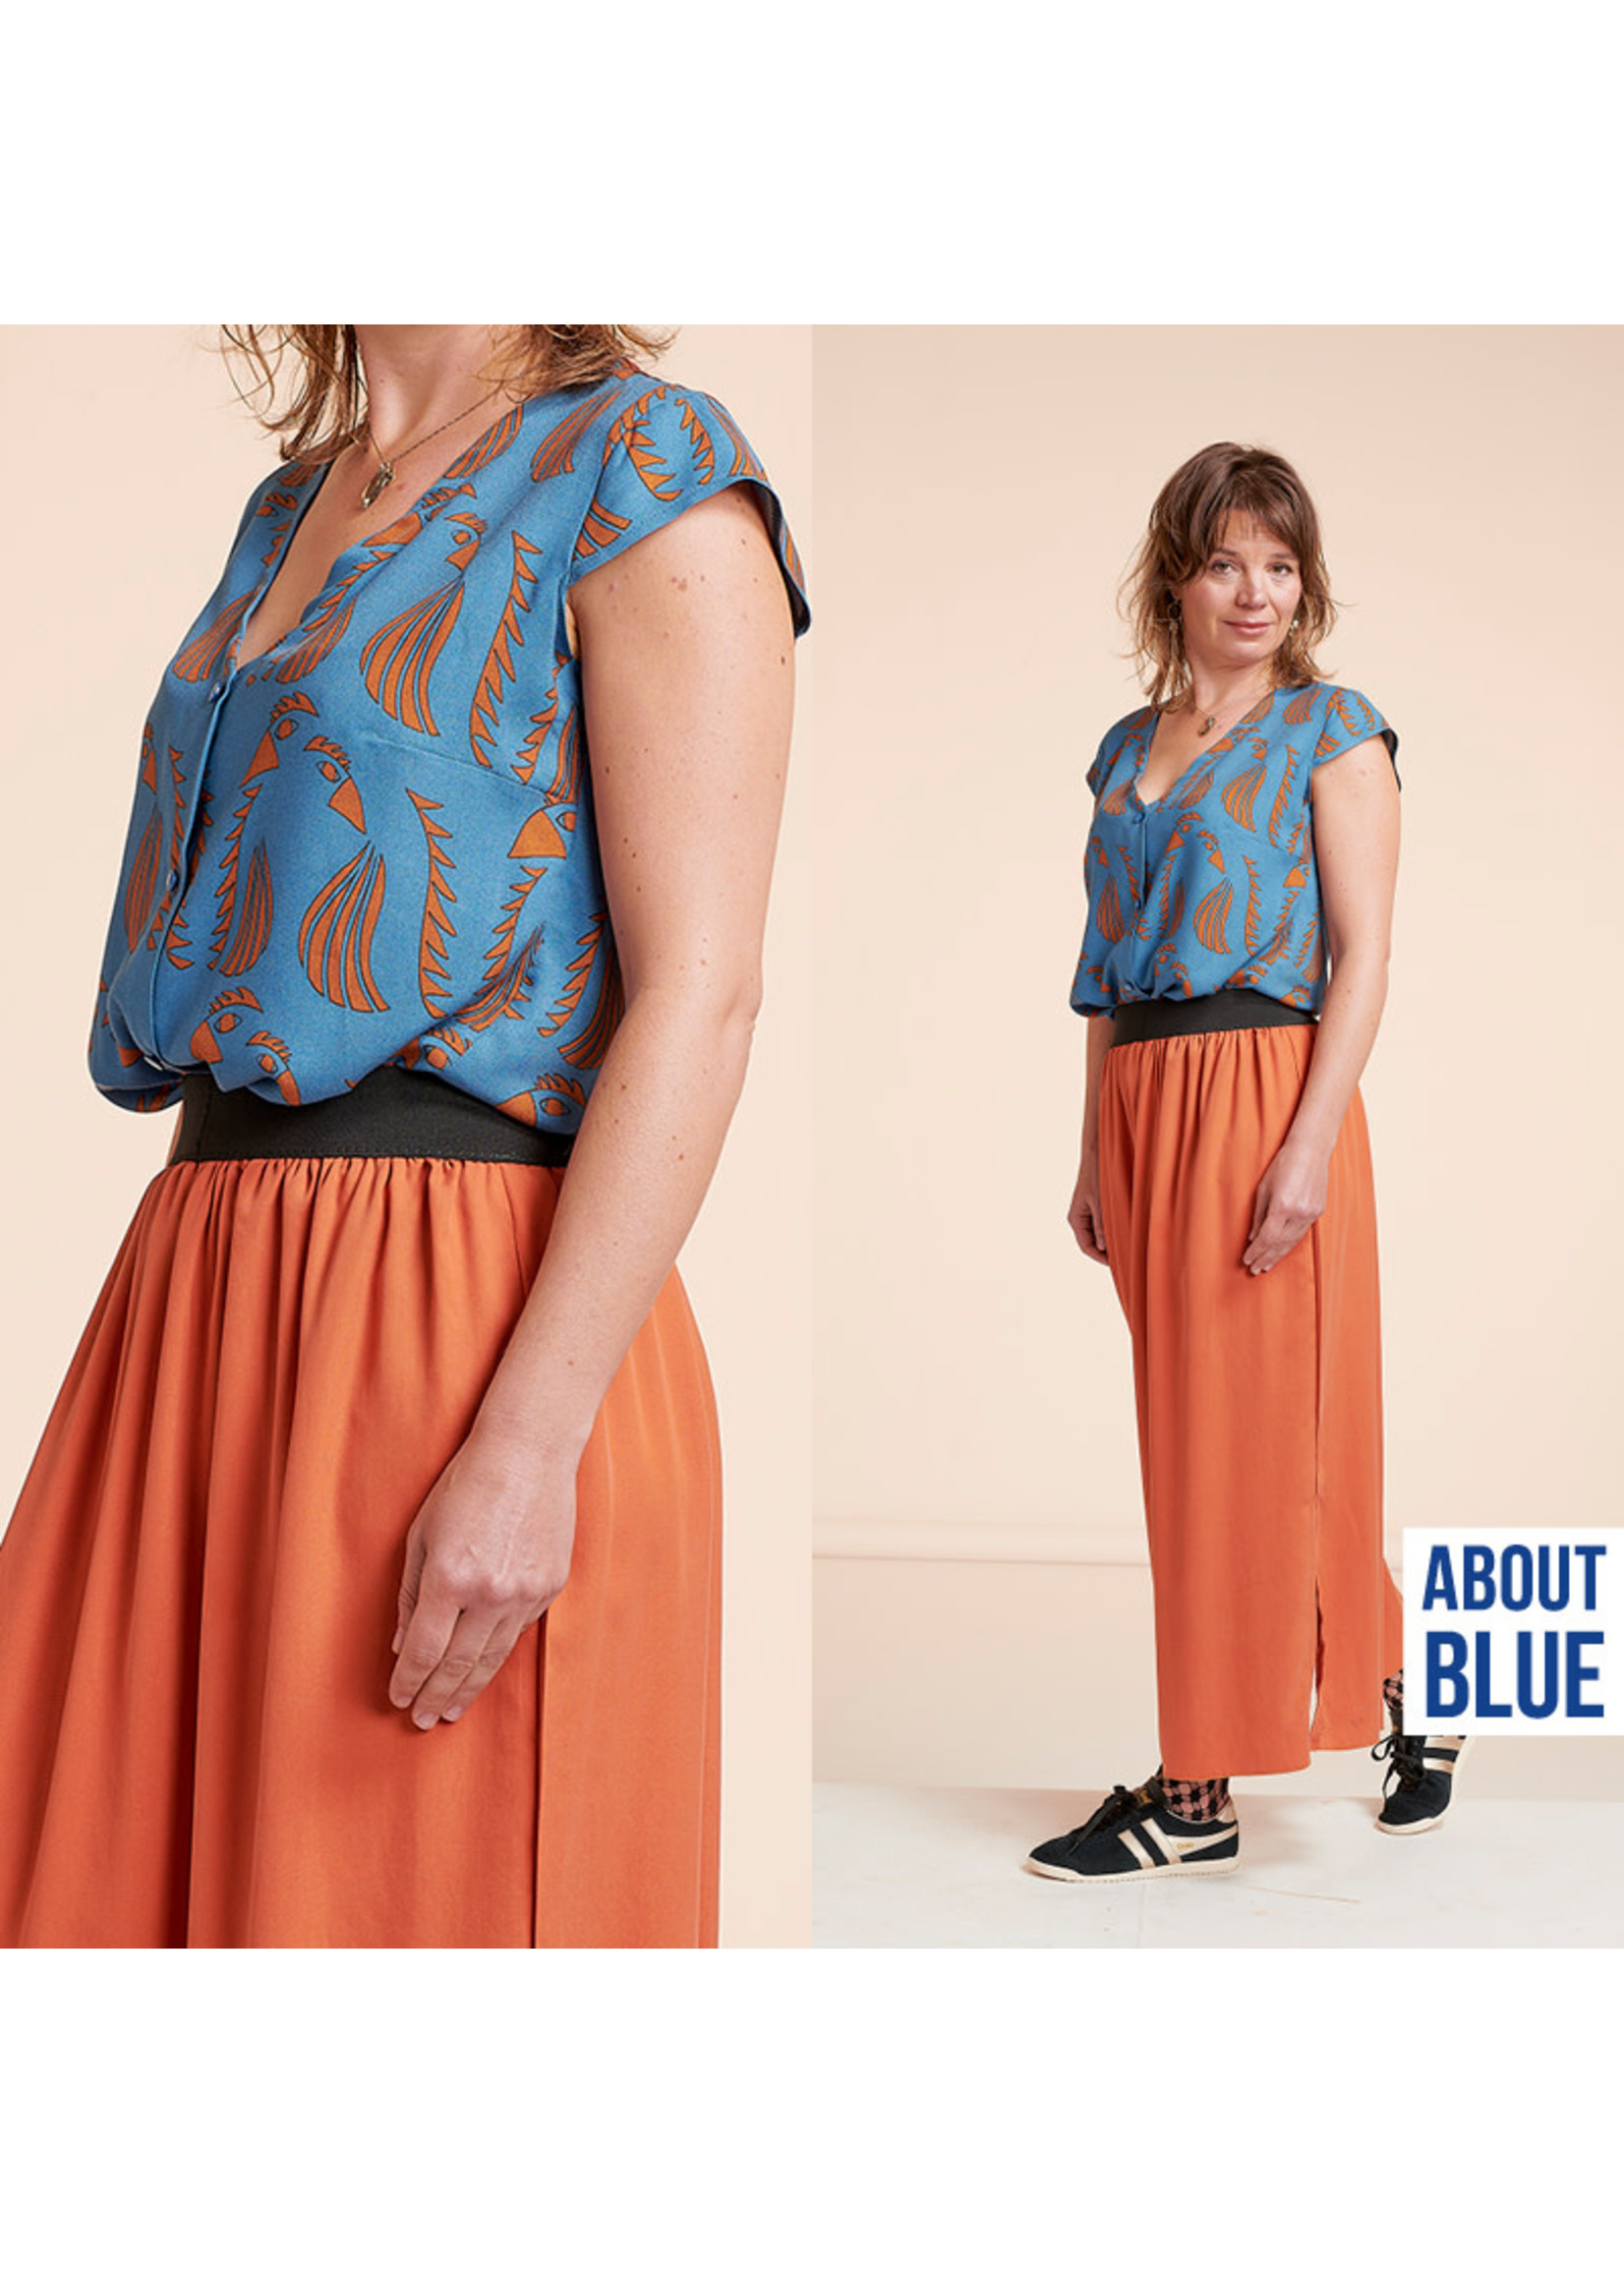 About Blue Fabrics Wonders of life - parrot blue